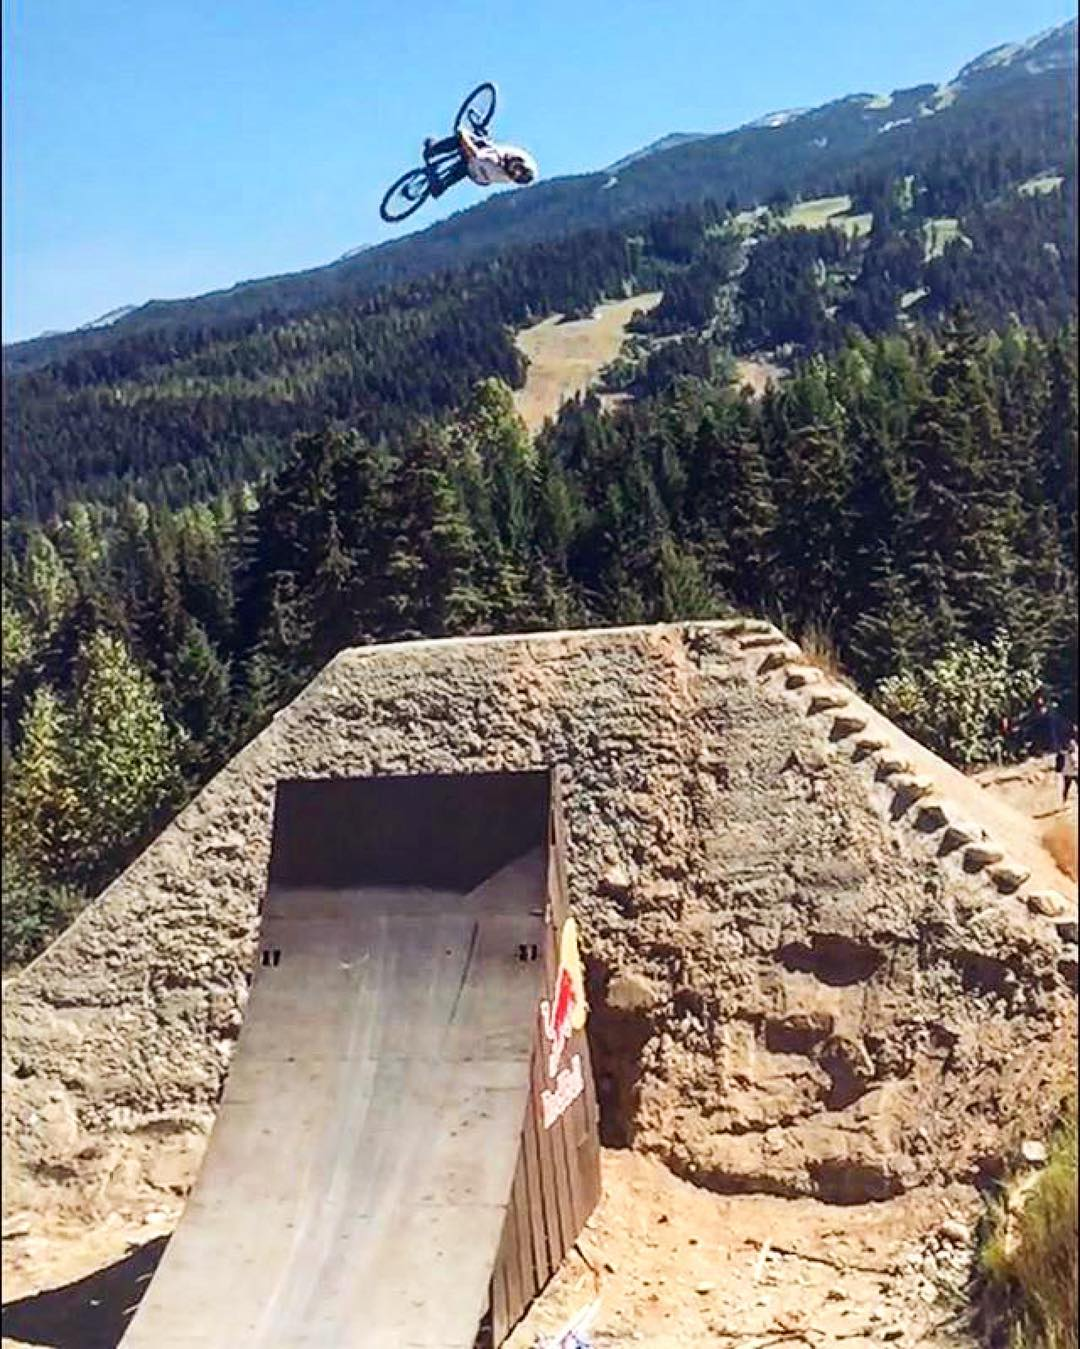 Practice at the #Joyride course is on || @nicholirogatkin #redbulljoyride #crankworx2016 #banger